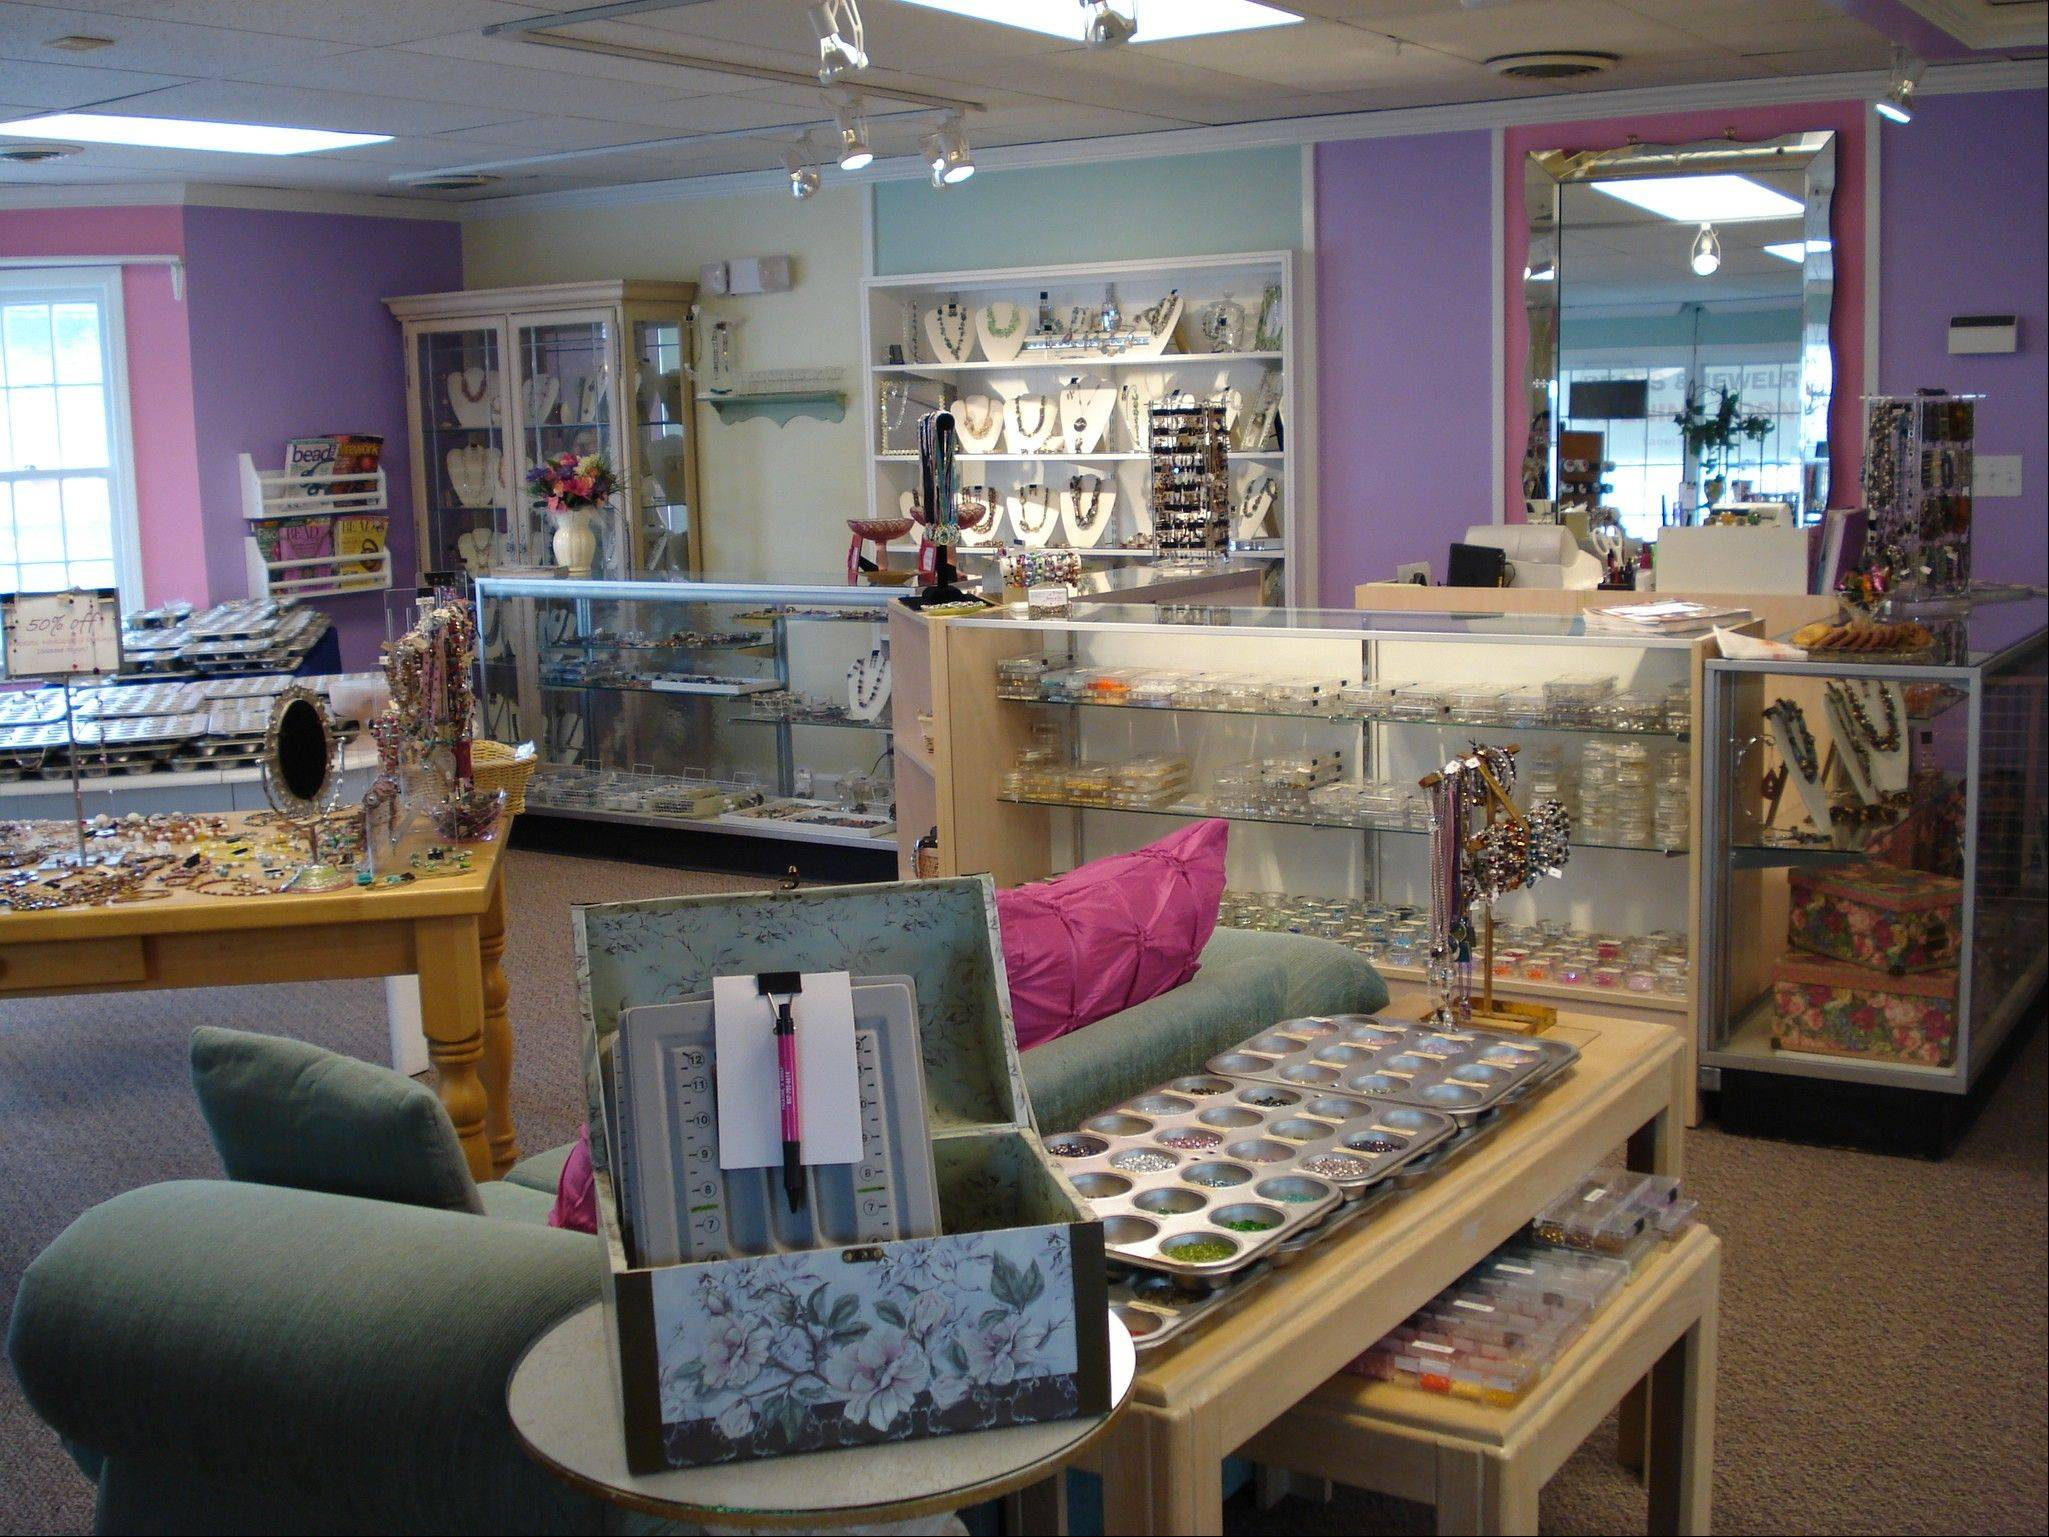 Facets if Isis in Palatine offers an array of beads and classes in Palatine. Owner Vilma Lee-Heinzinger left her corporate job more than six years ago to start the business.